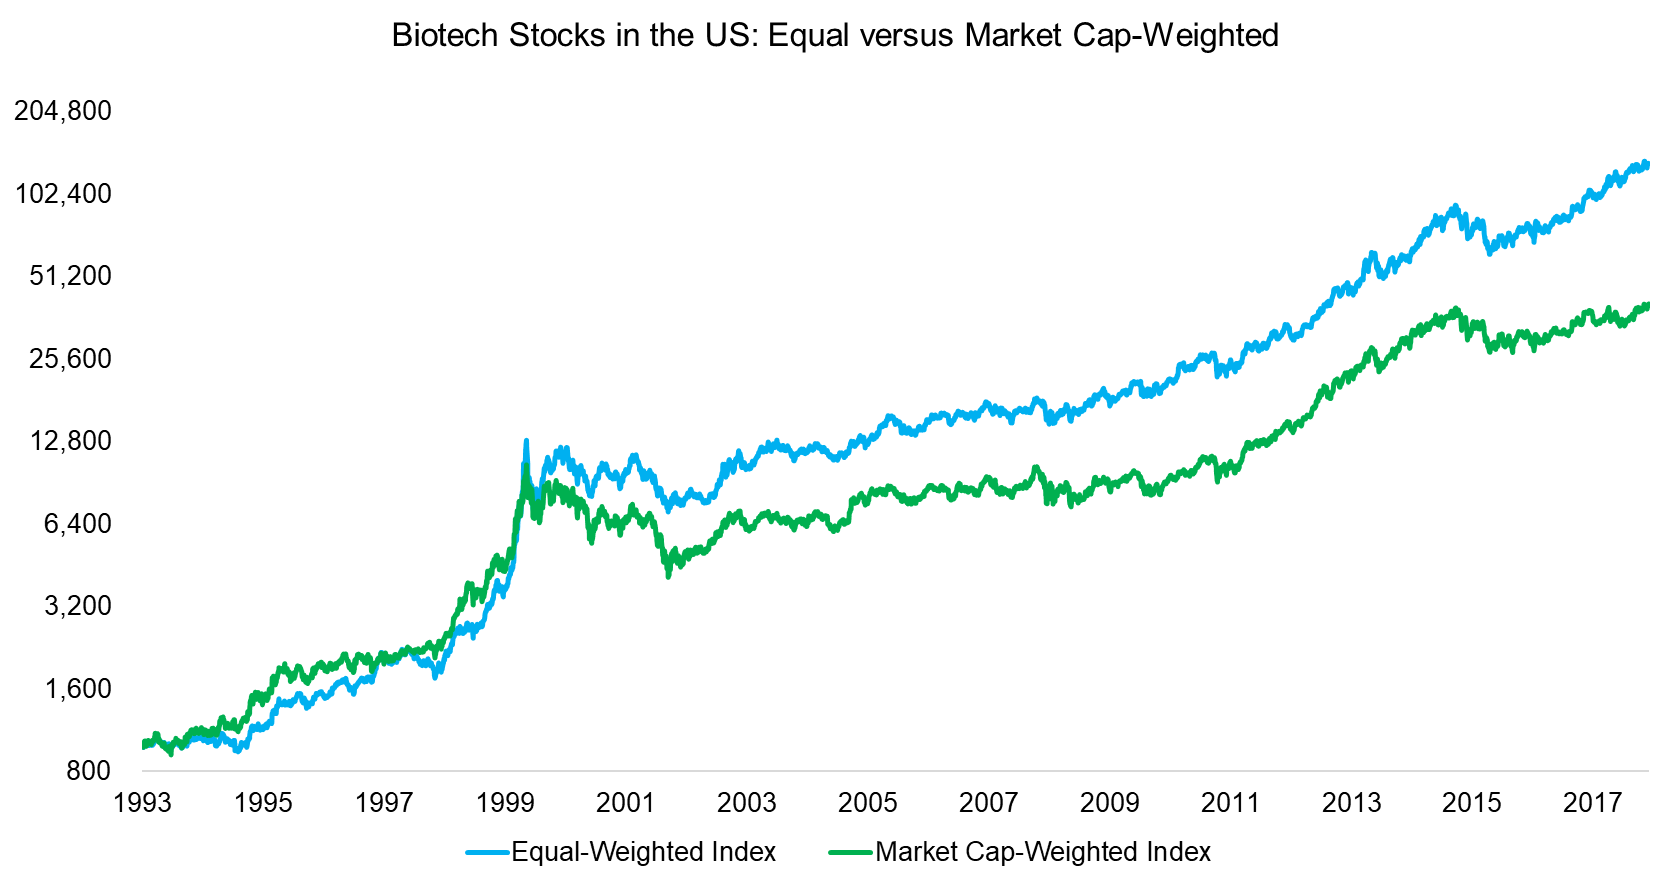 Biotech Stocks in the US Equal versus Market Cap-Weighted